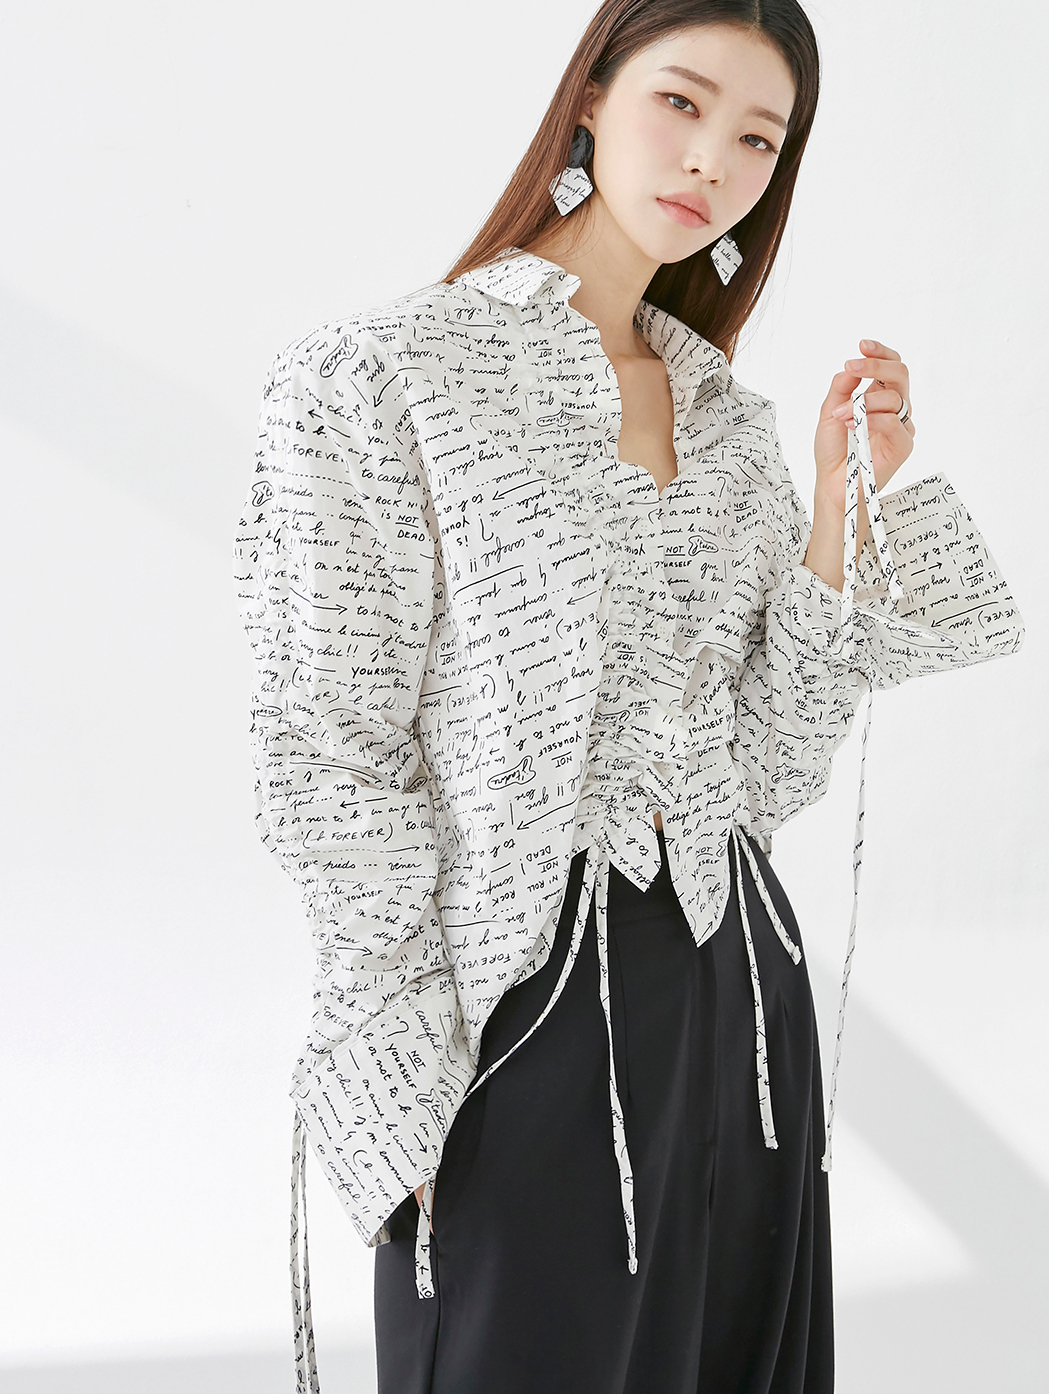 S357 Viewer String Letter Shirt